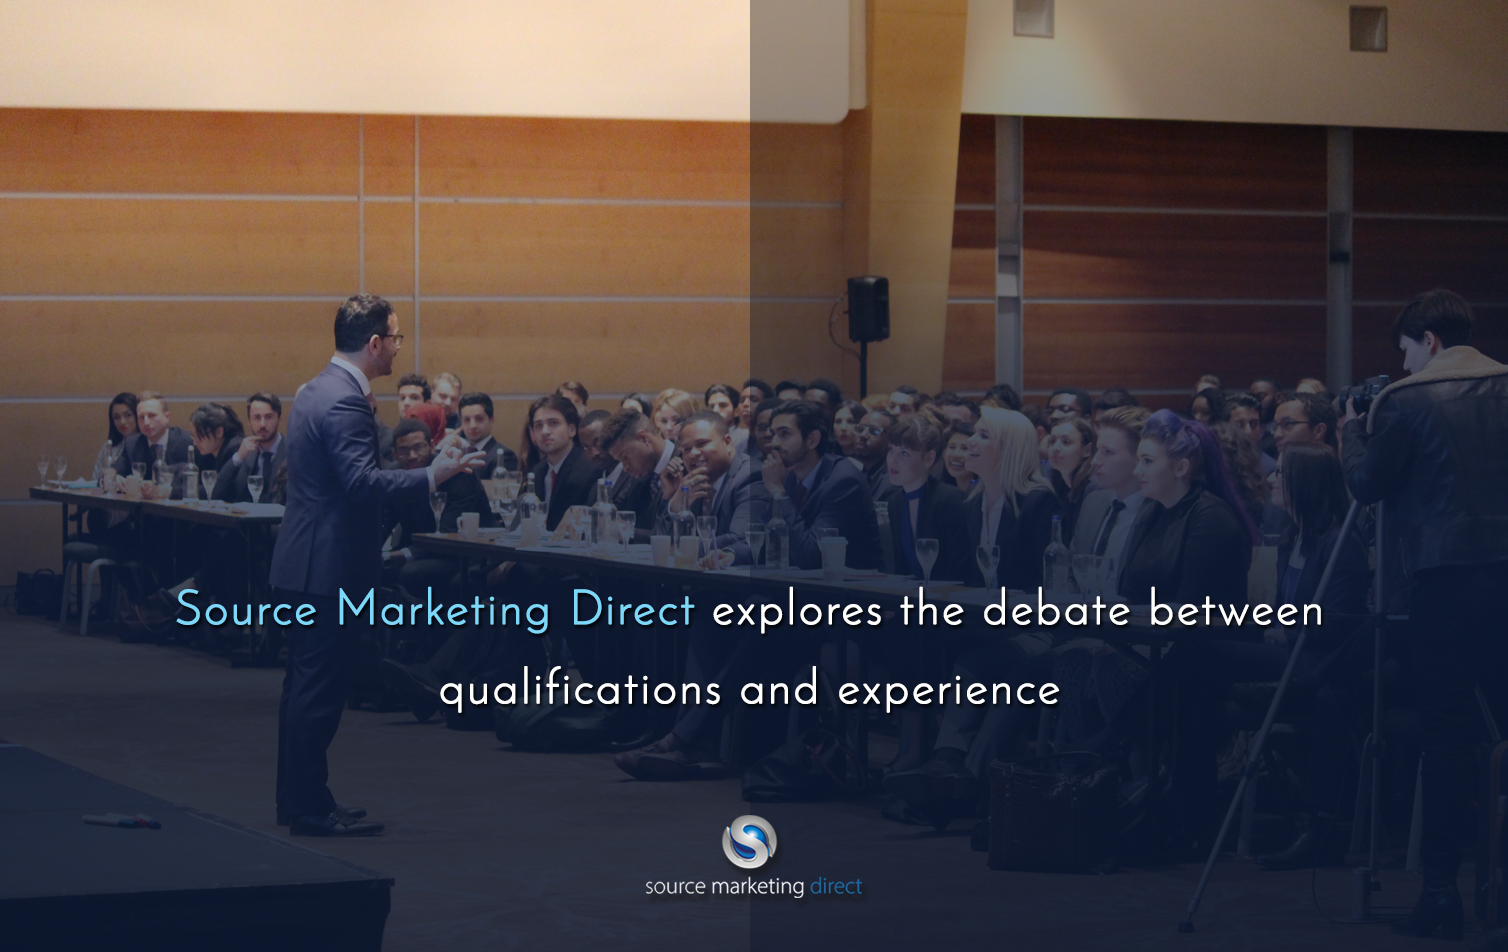 Source Marketing Direct Job Qualifications Review